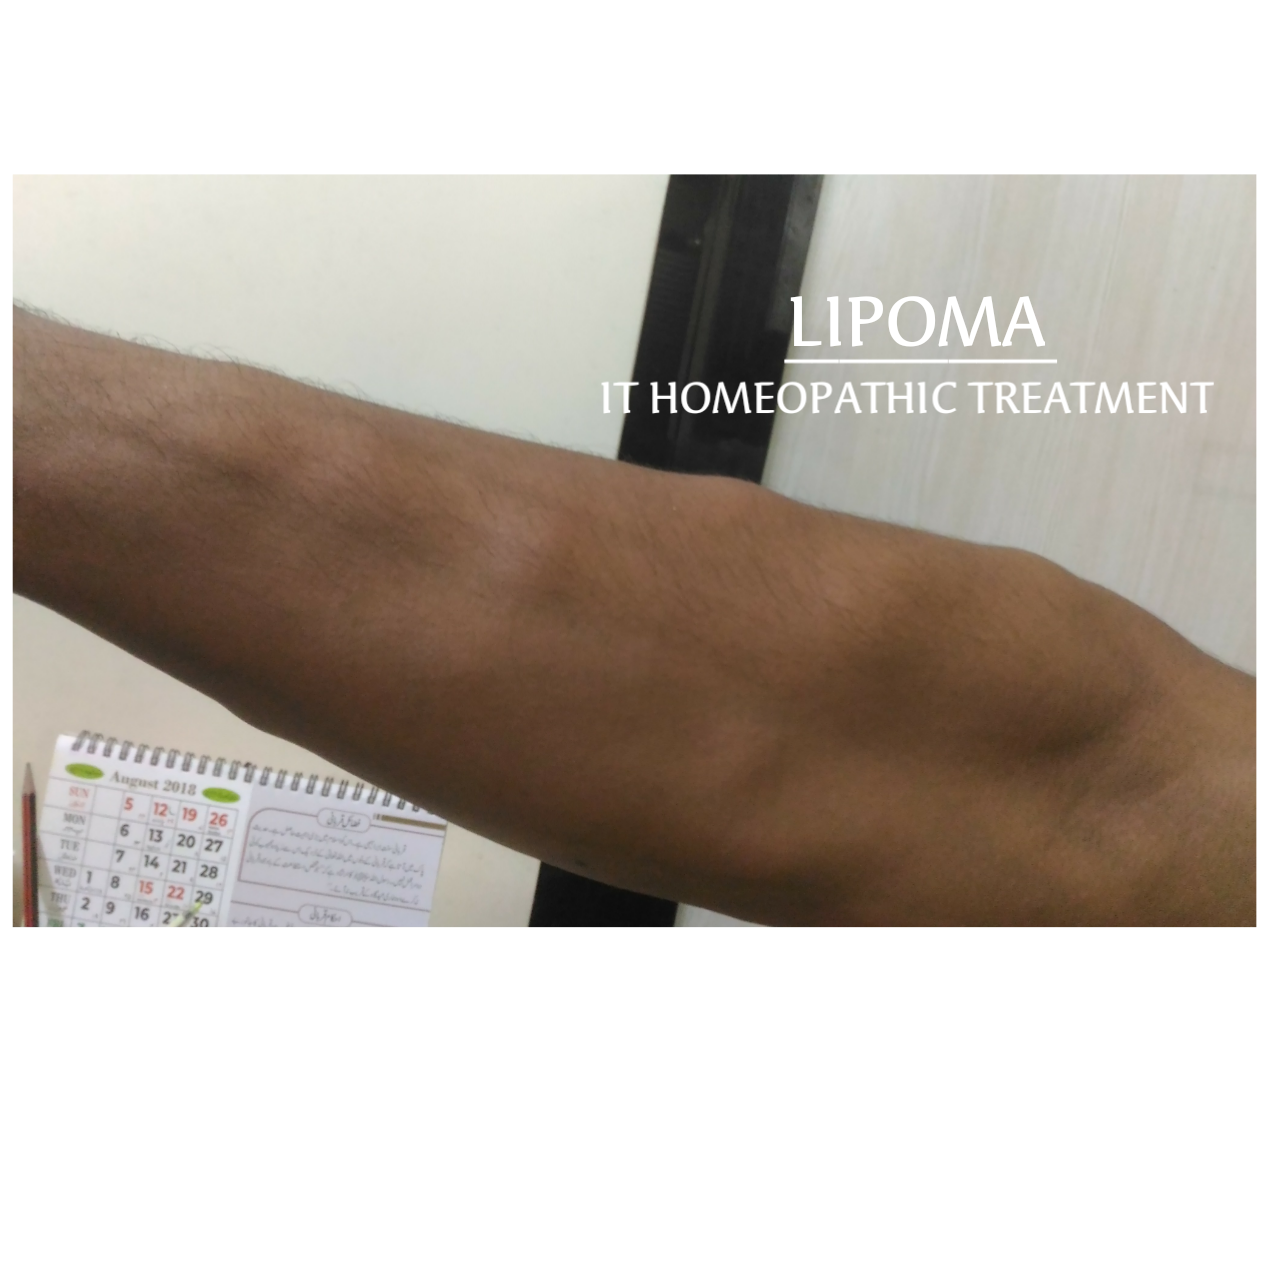 LIPOMA AND ITS HOMEOPATHIC REMEDIES - ALL ABOUT HOMEOPATHY